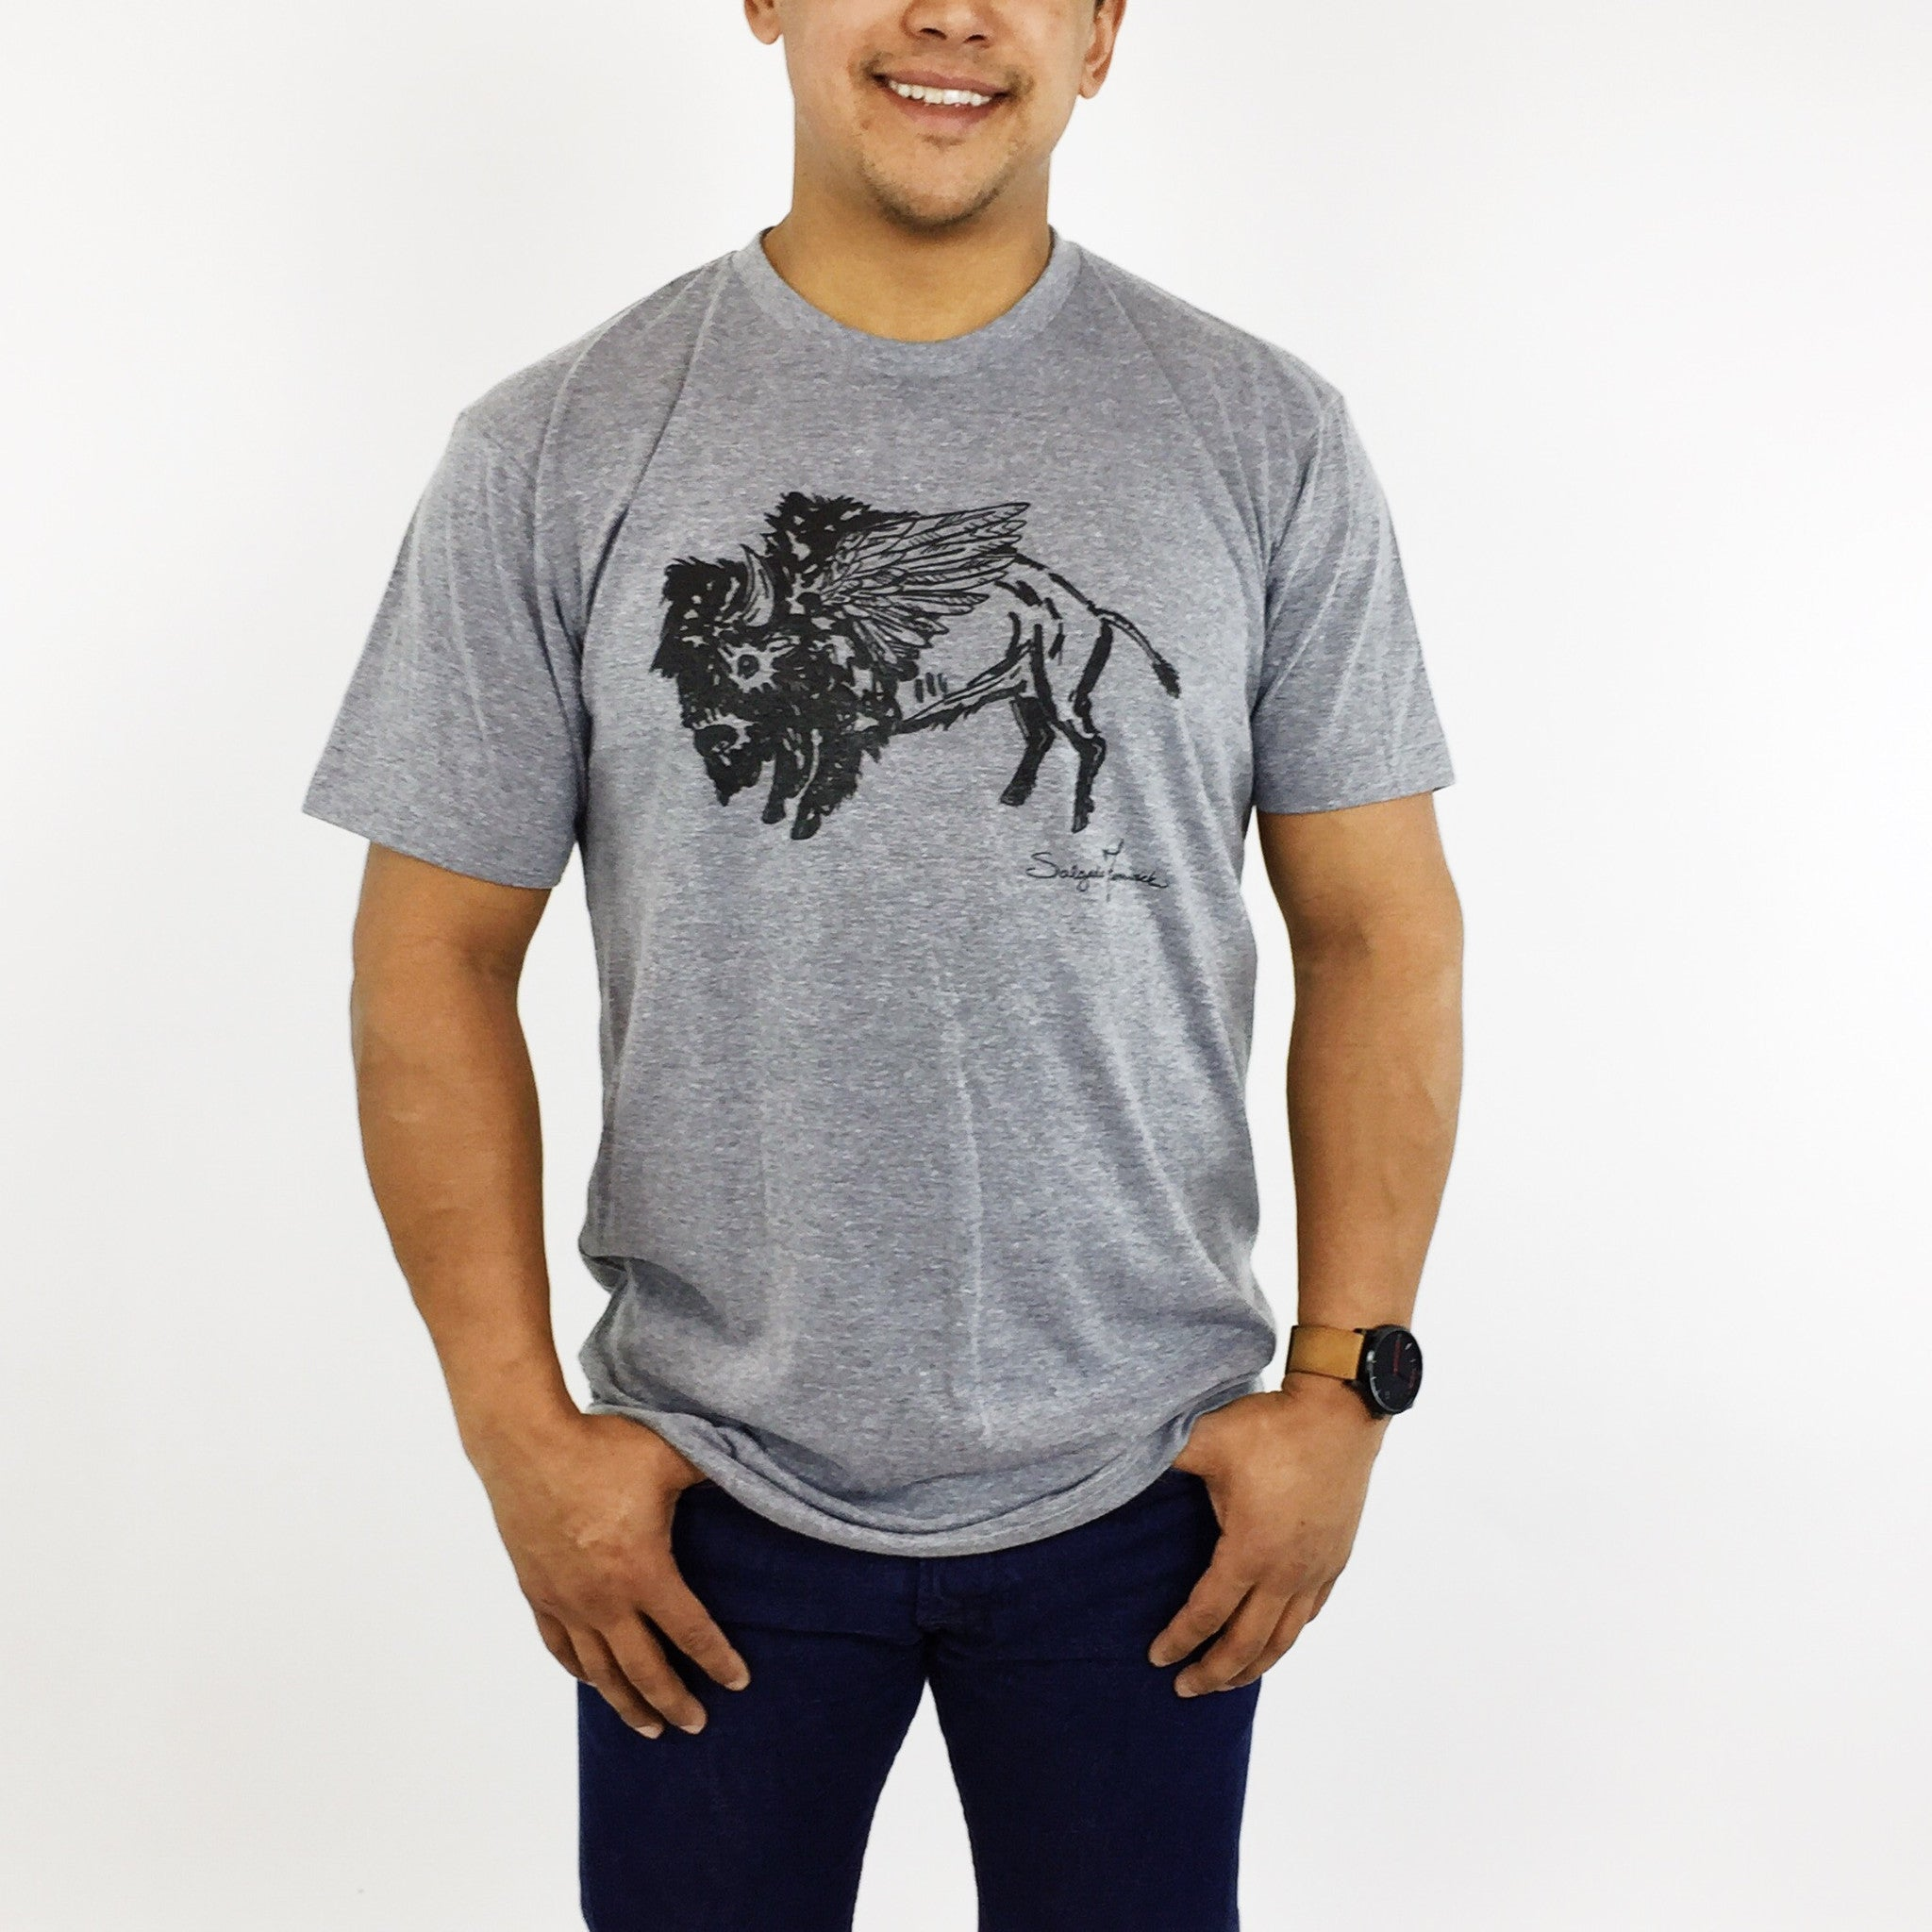 Men's Crew Neck - Buffalo